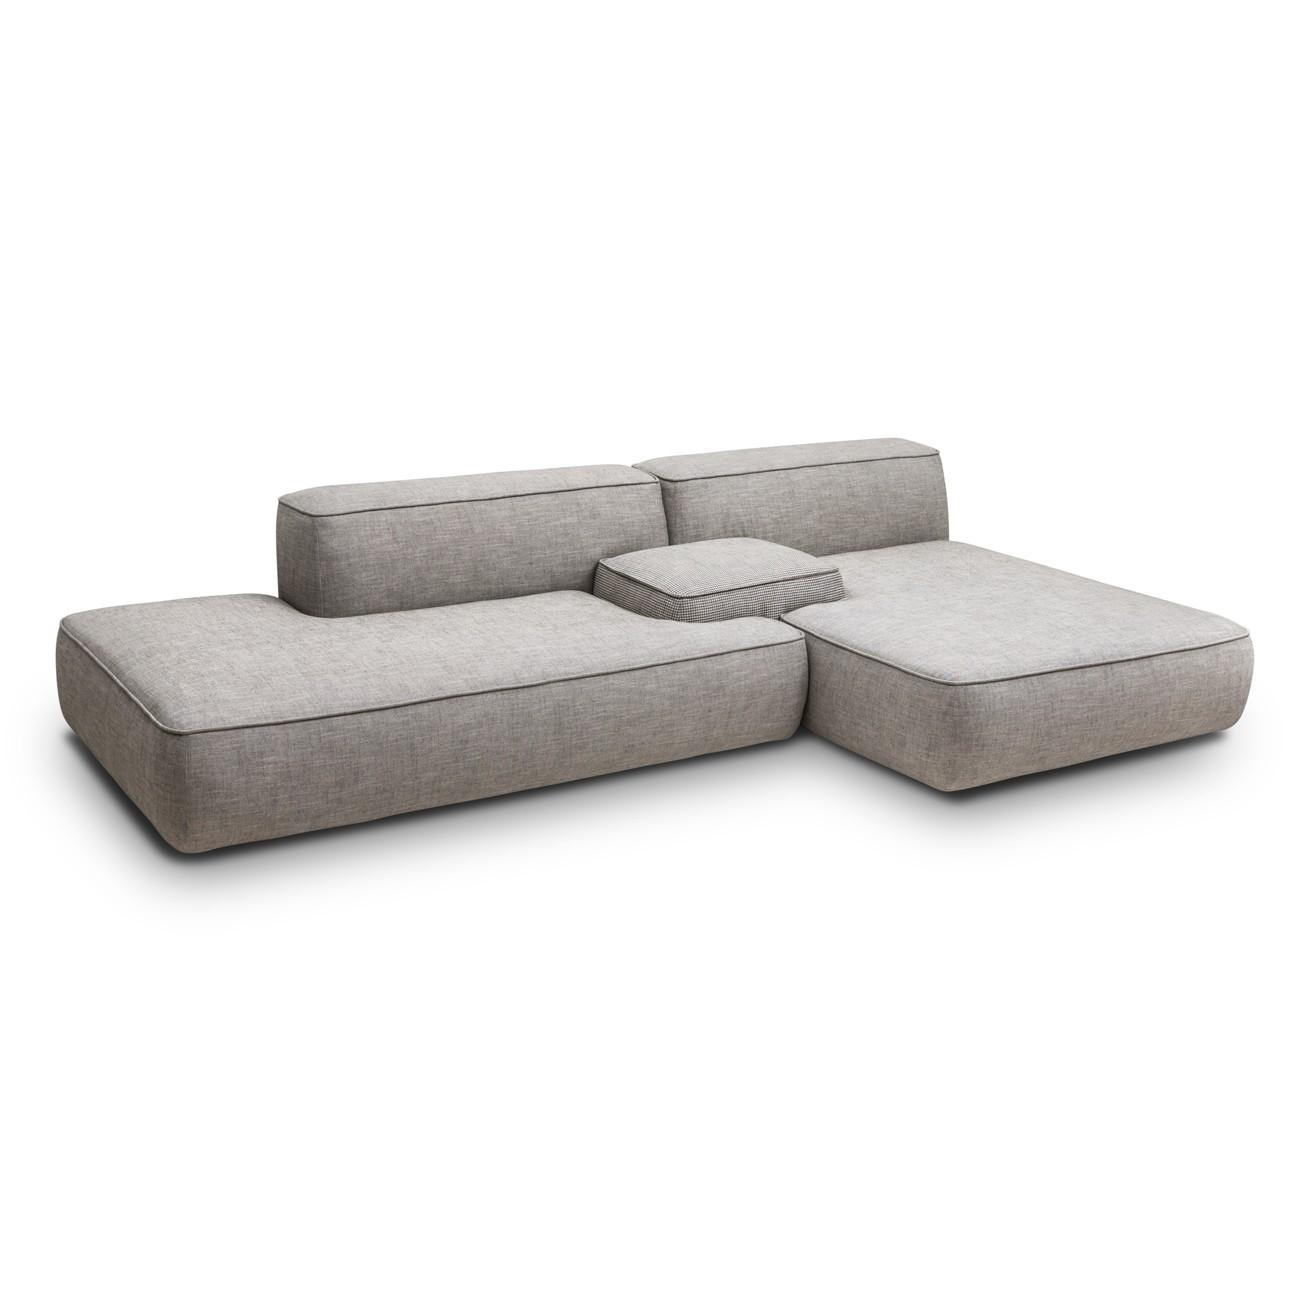 Cloud Magnetic Floating Sofa Criteria Sectional Sofas Chicago Four Throughout Magnetic Floating Sofas (View 14 of 20)